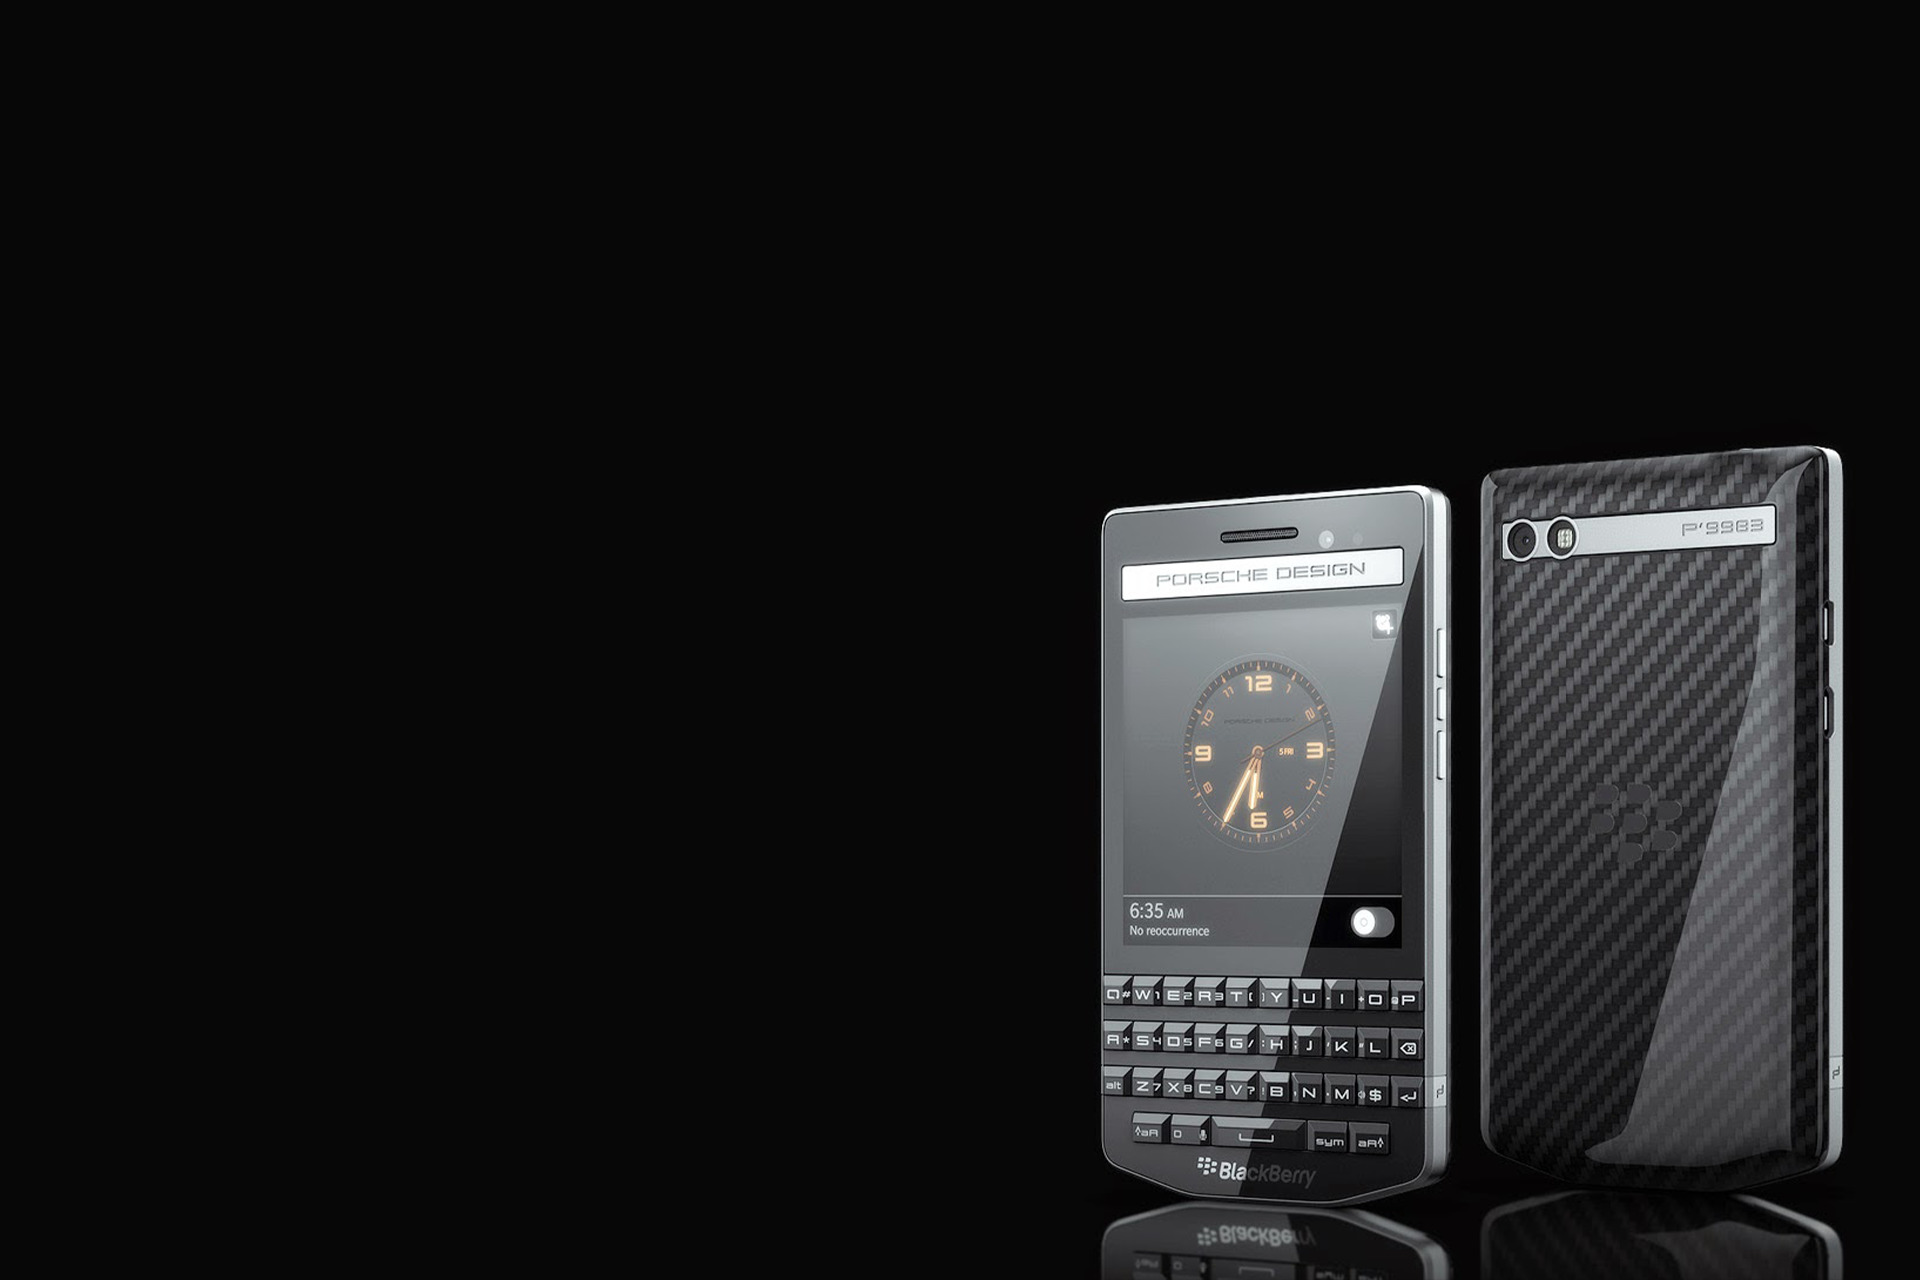 Blackberry Porsche Design Series Studio F A Porsche Premium Design Services